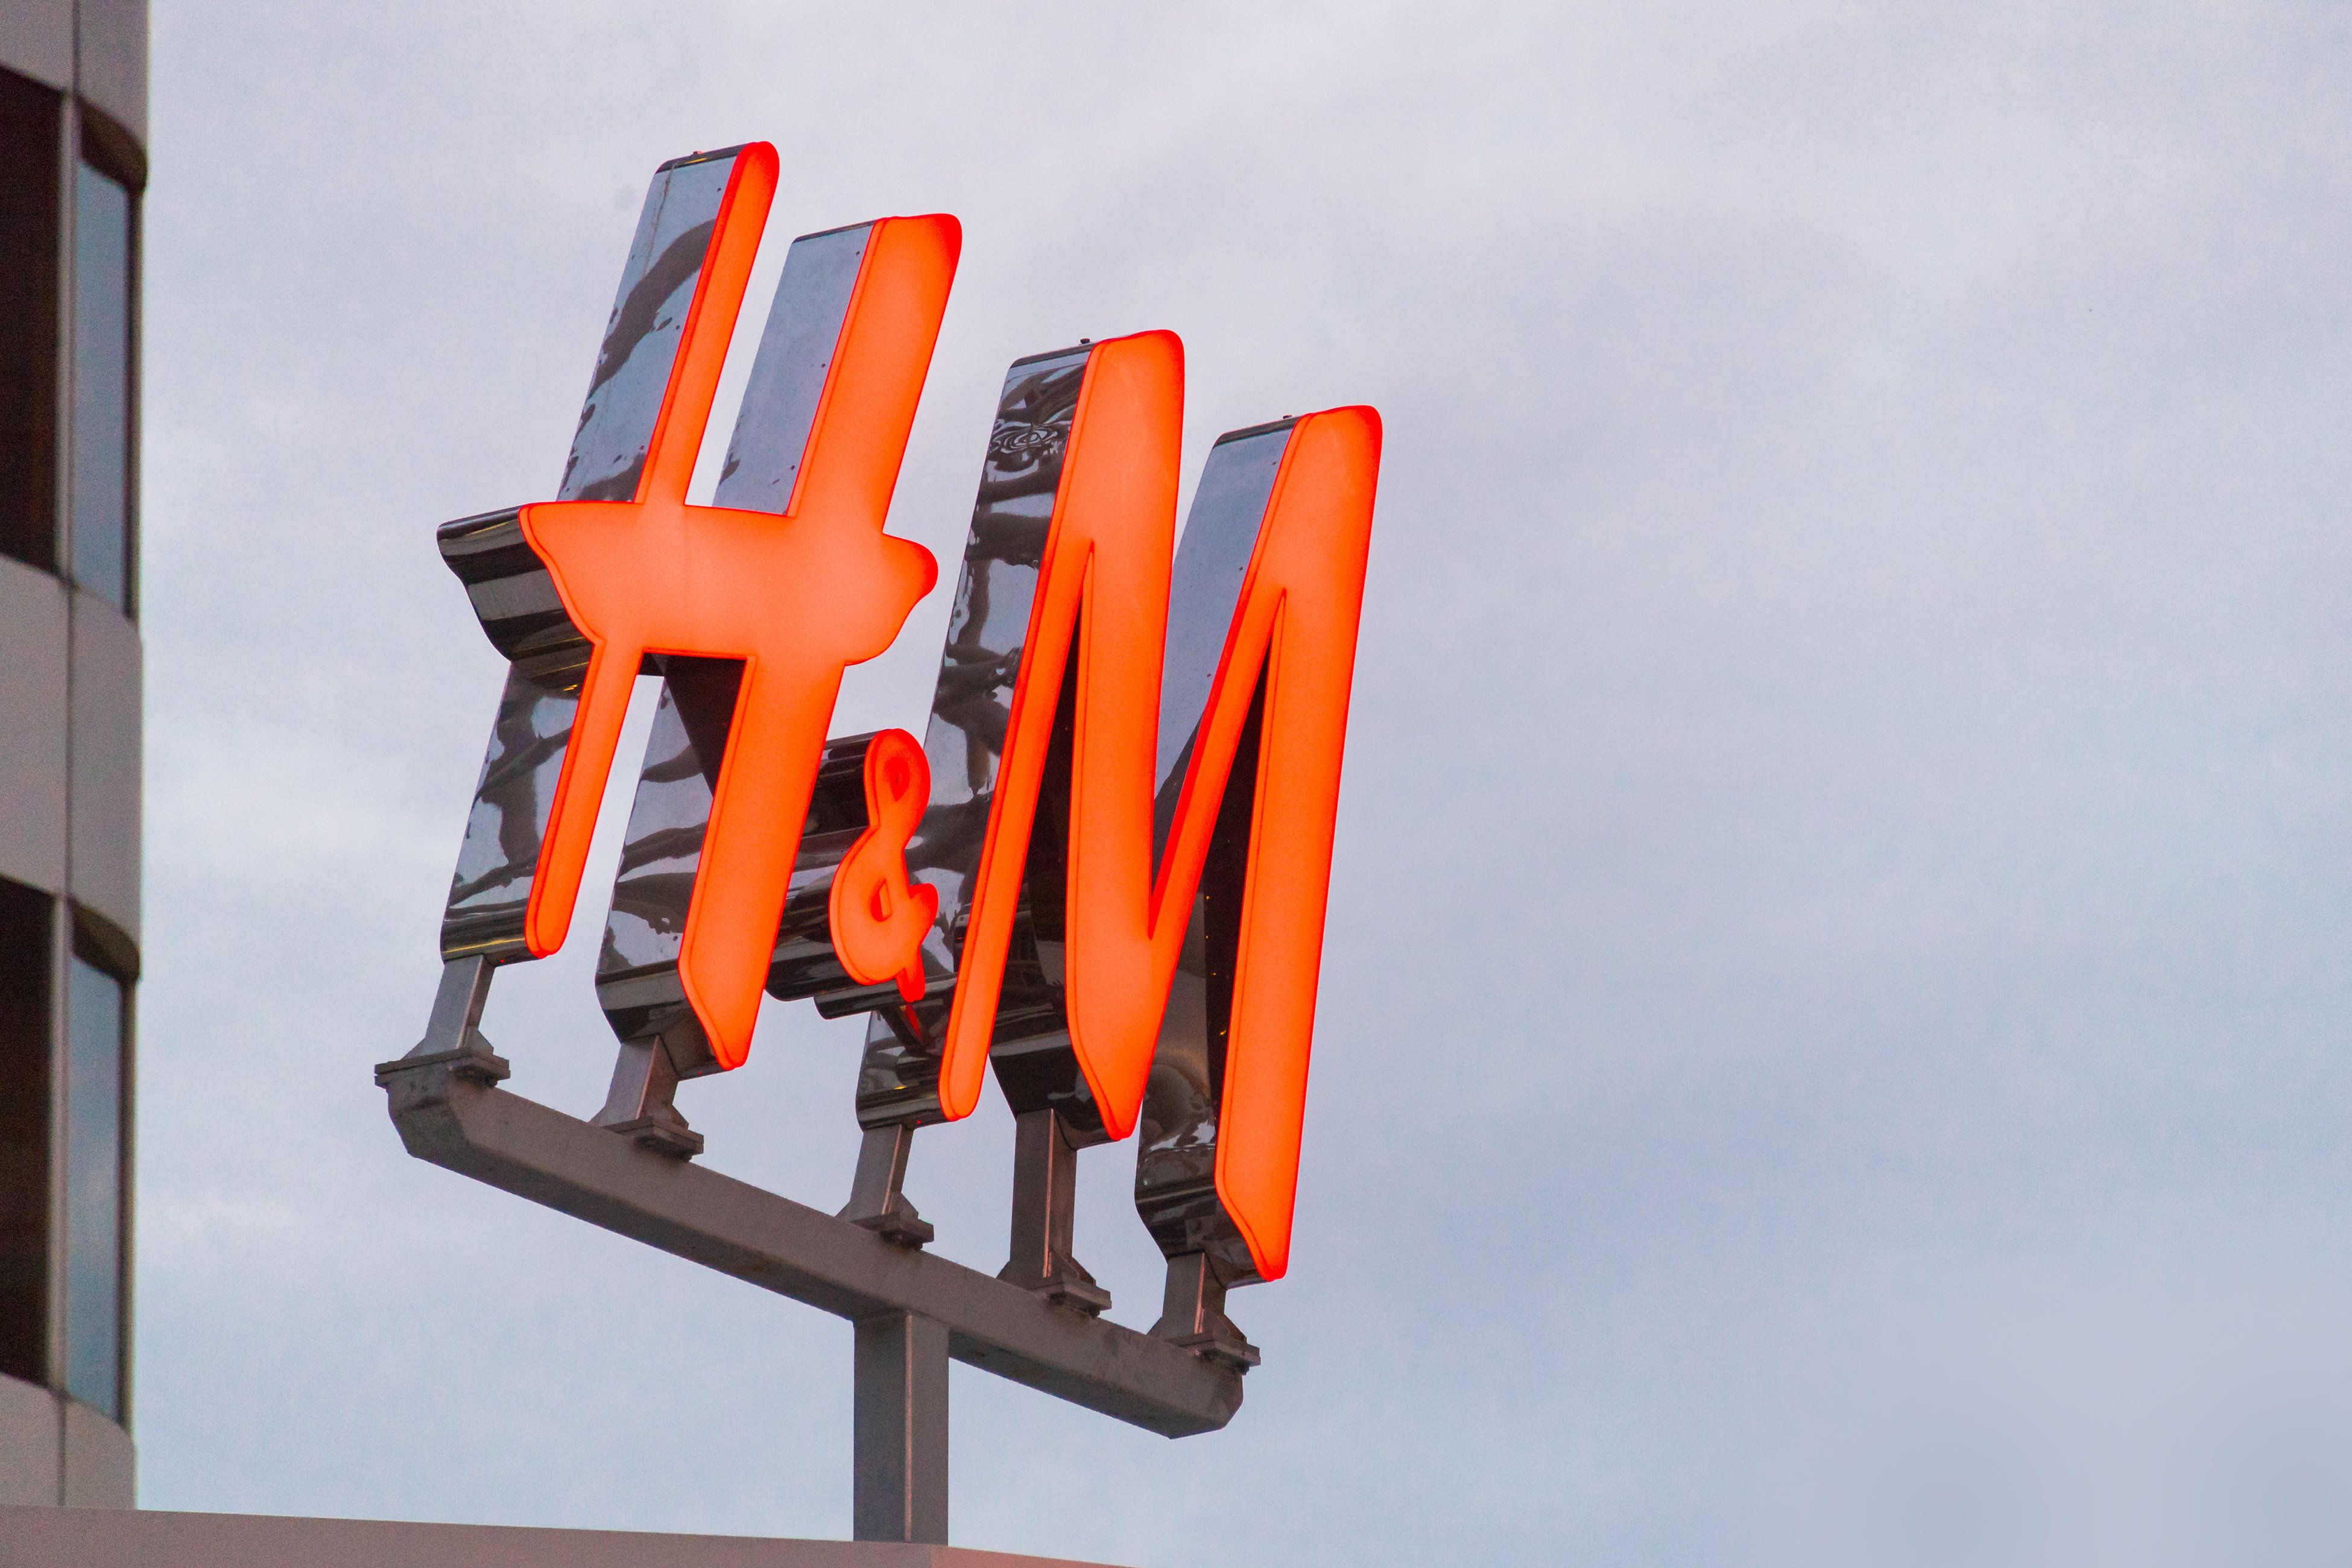 Home Office H&m Before Buying More Clothes At H M Read This Huffpost